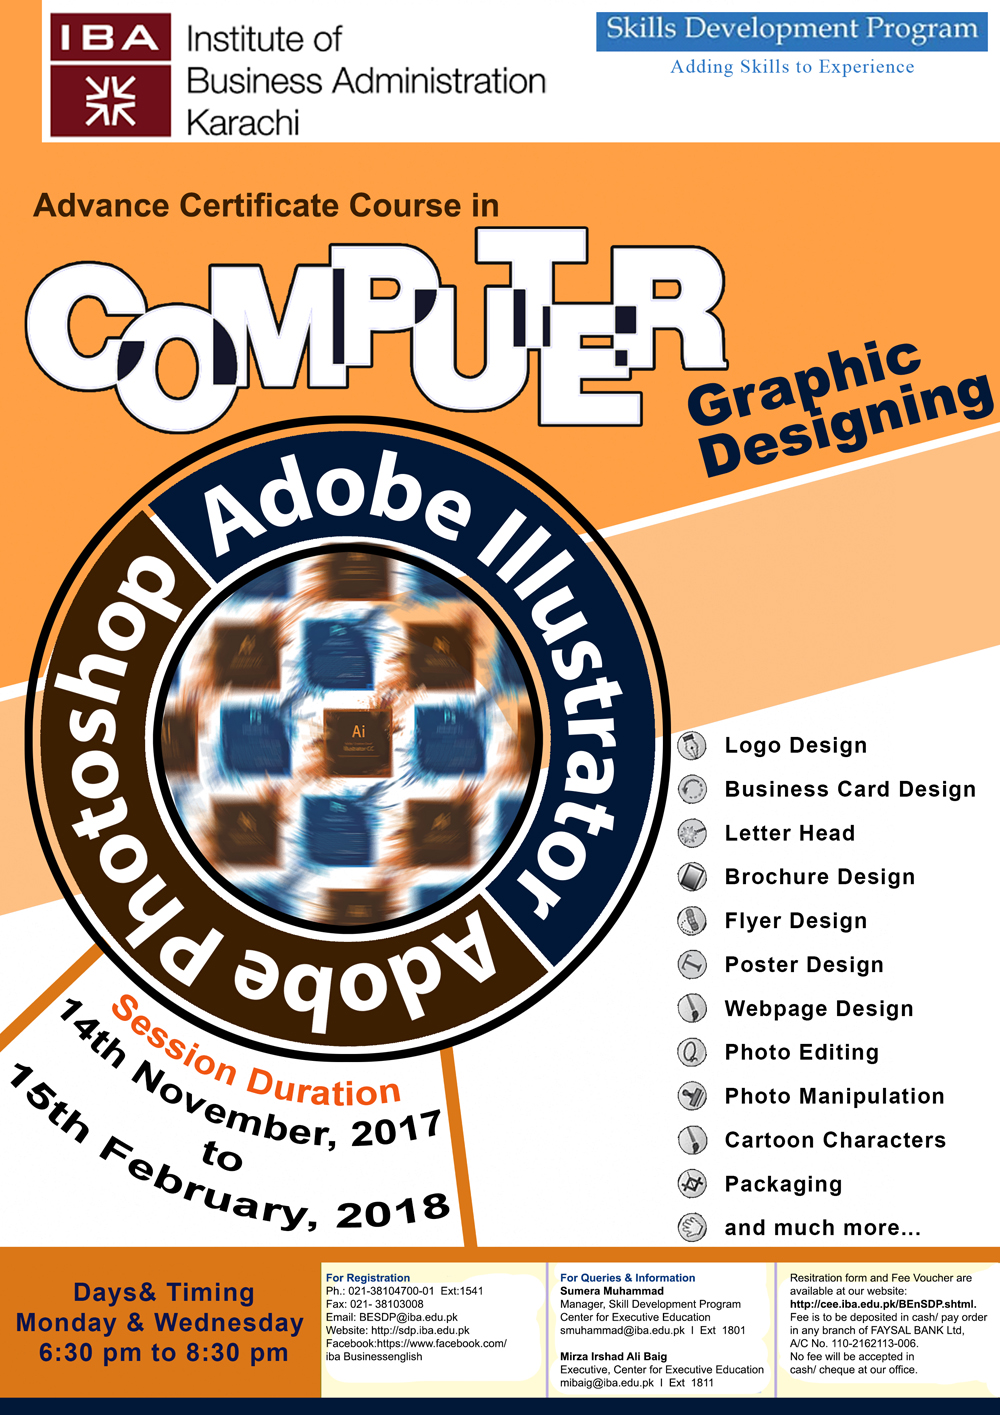 Advance Certificate Course in Computer Graphic Designing